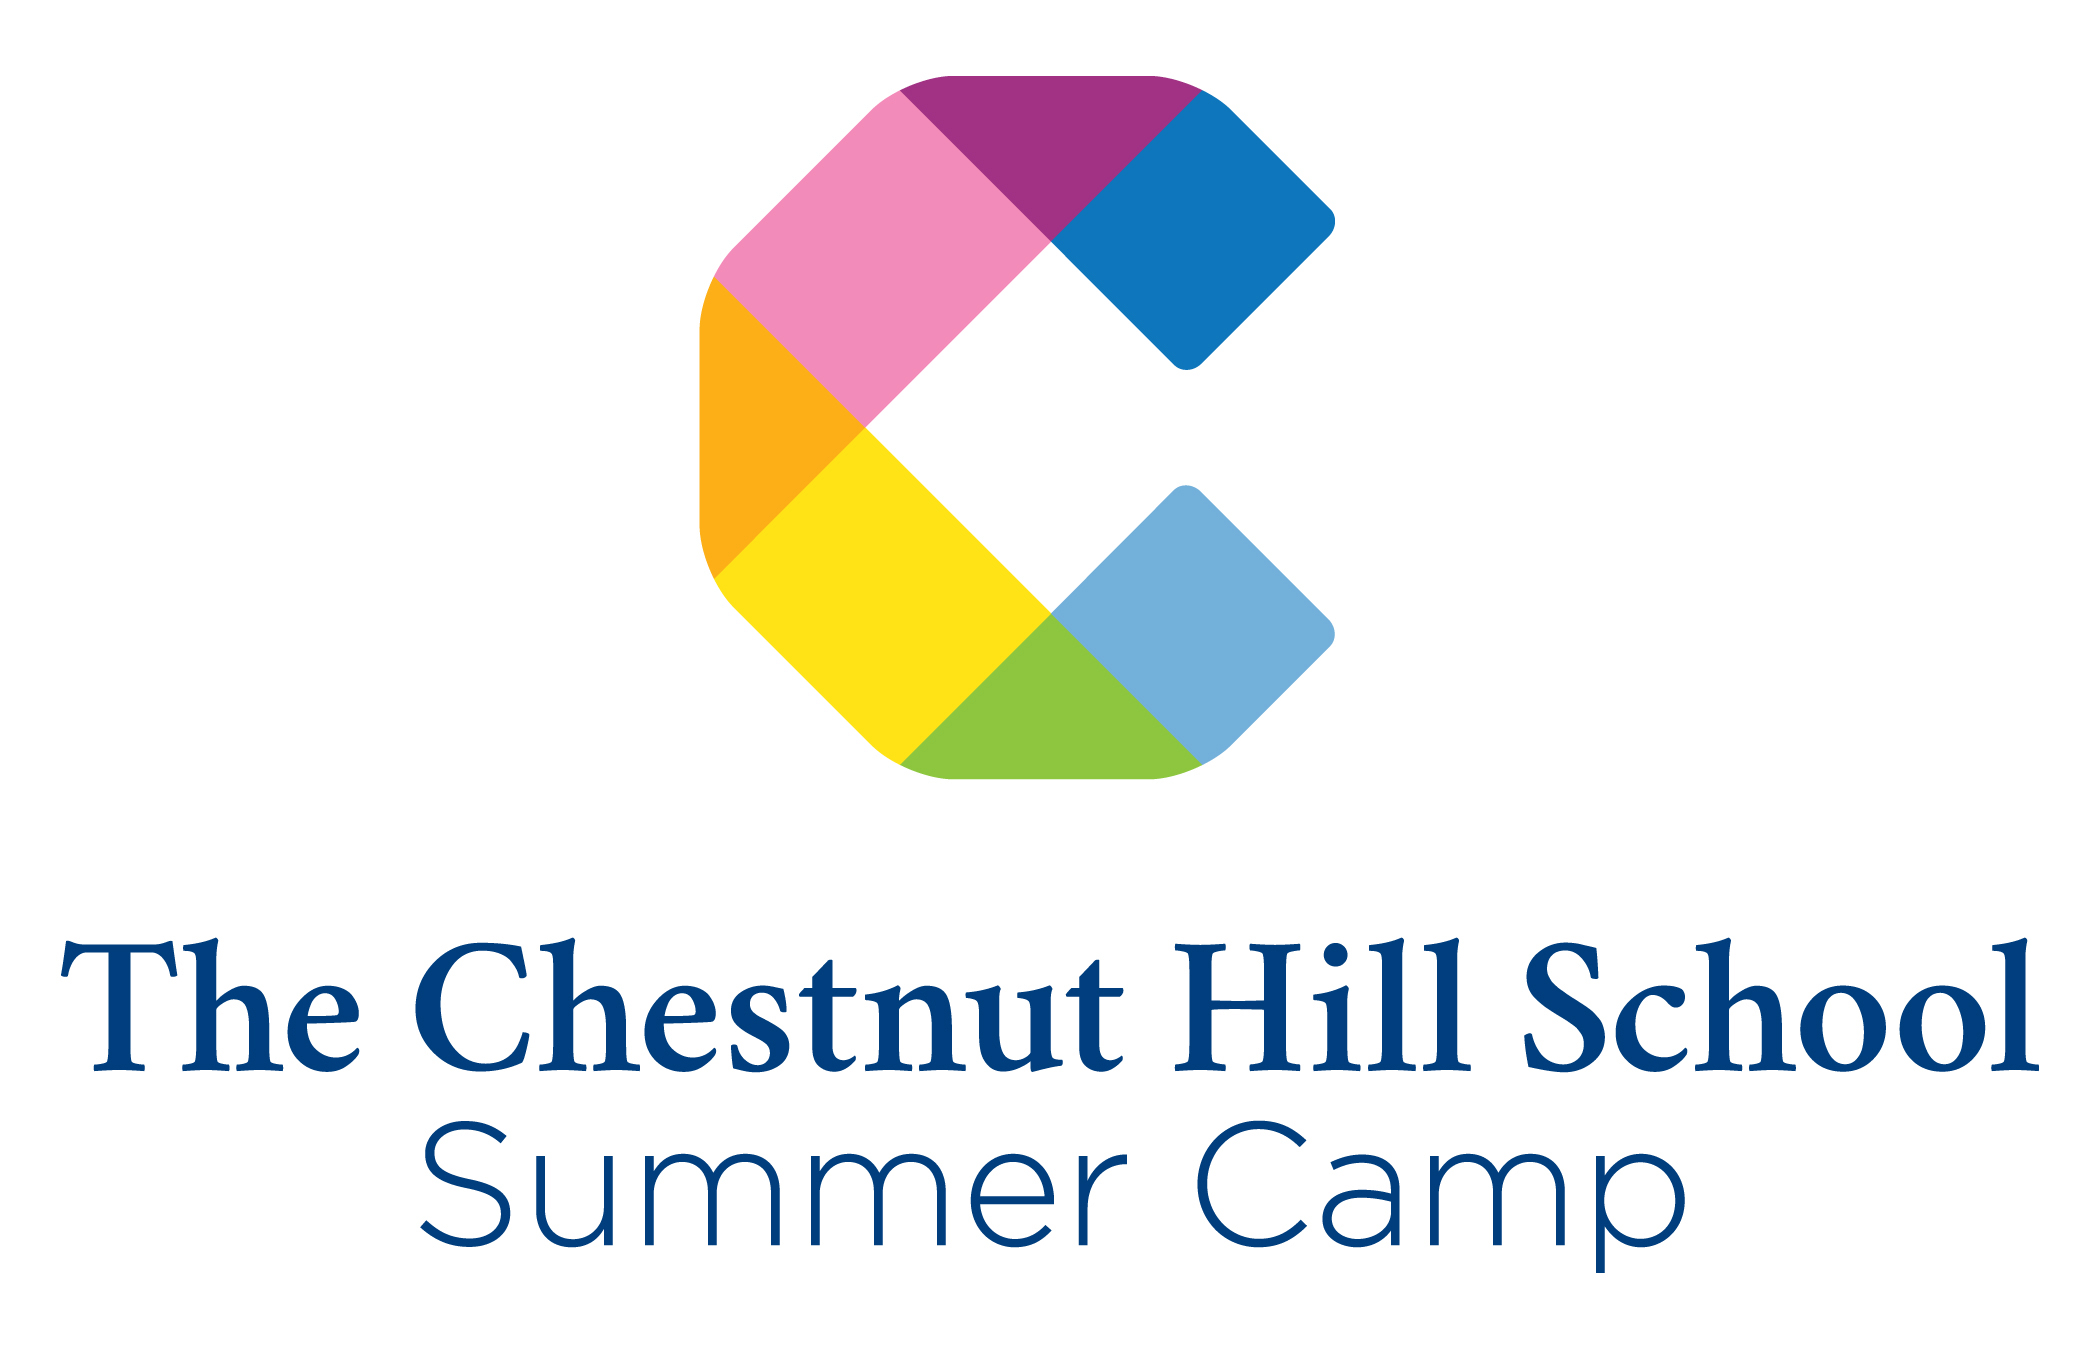 Summer employment the chestnut hill school 1betcityfo Image collections